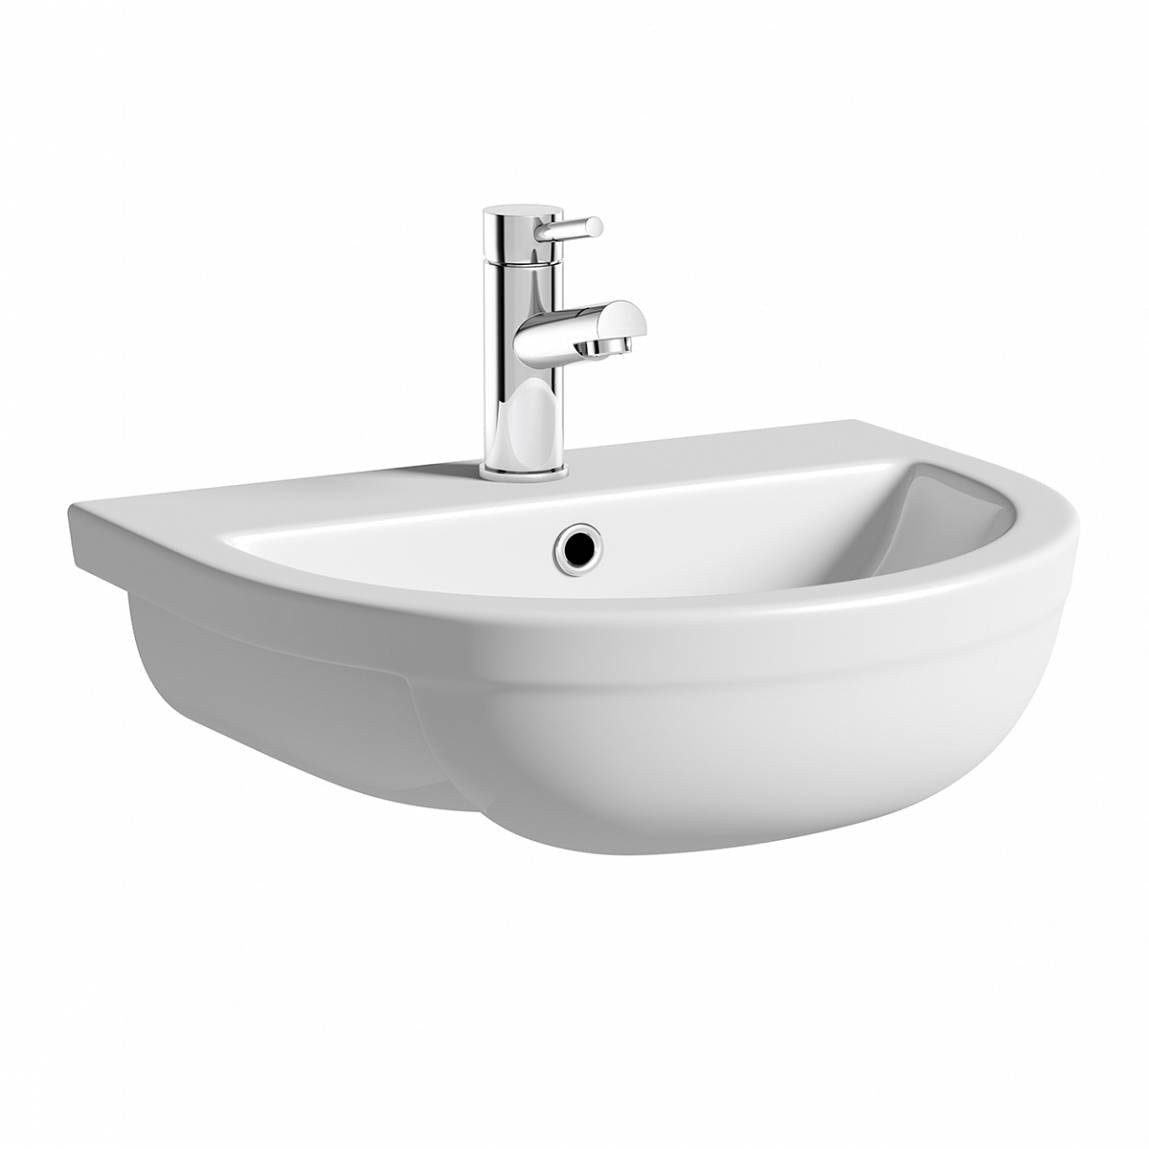 Victoria Plumb Showers >> Orchard Elena 1 tap hole semi recessed counter top basin 500mm with waste | VictoriaPlum.com